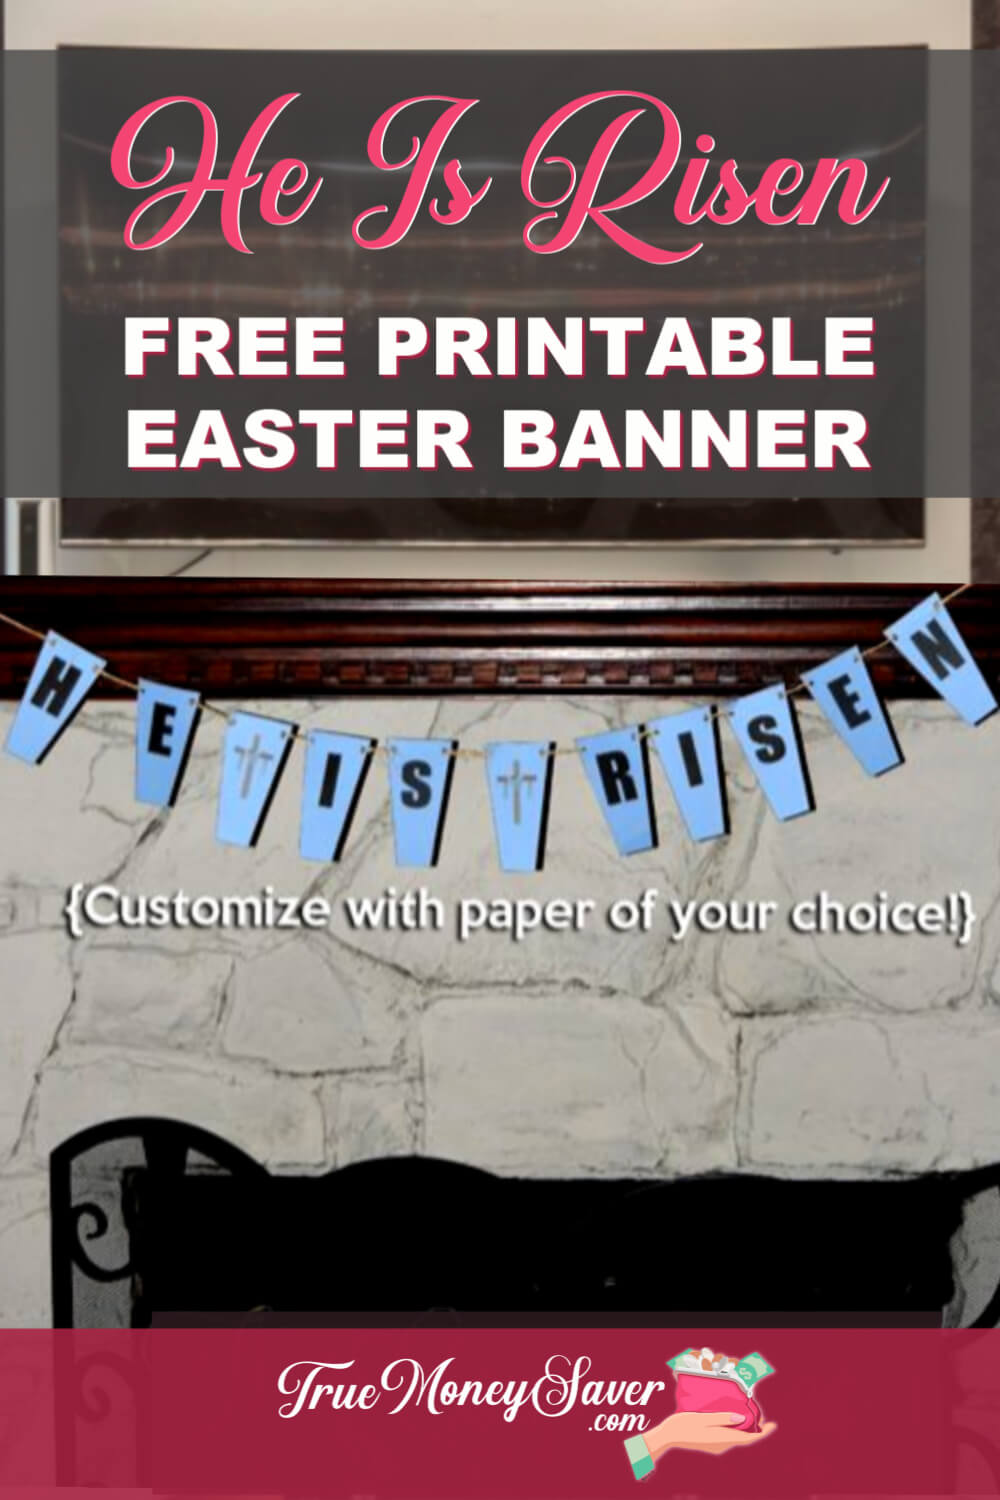 He Is Risen Easter Banner - The Free Printable You Need To Make